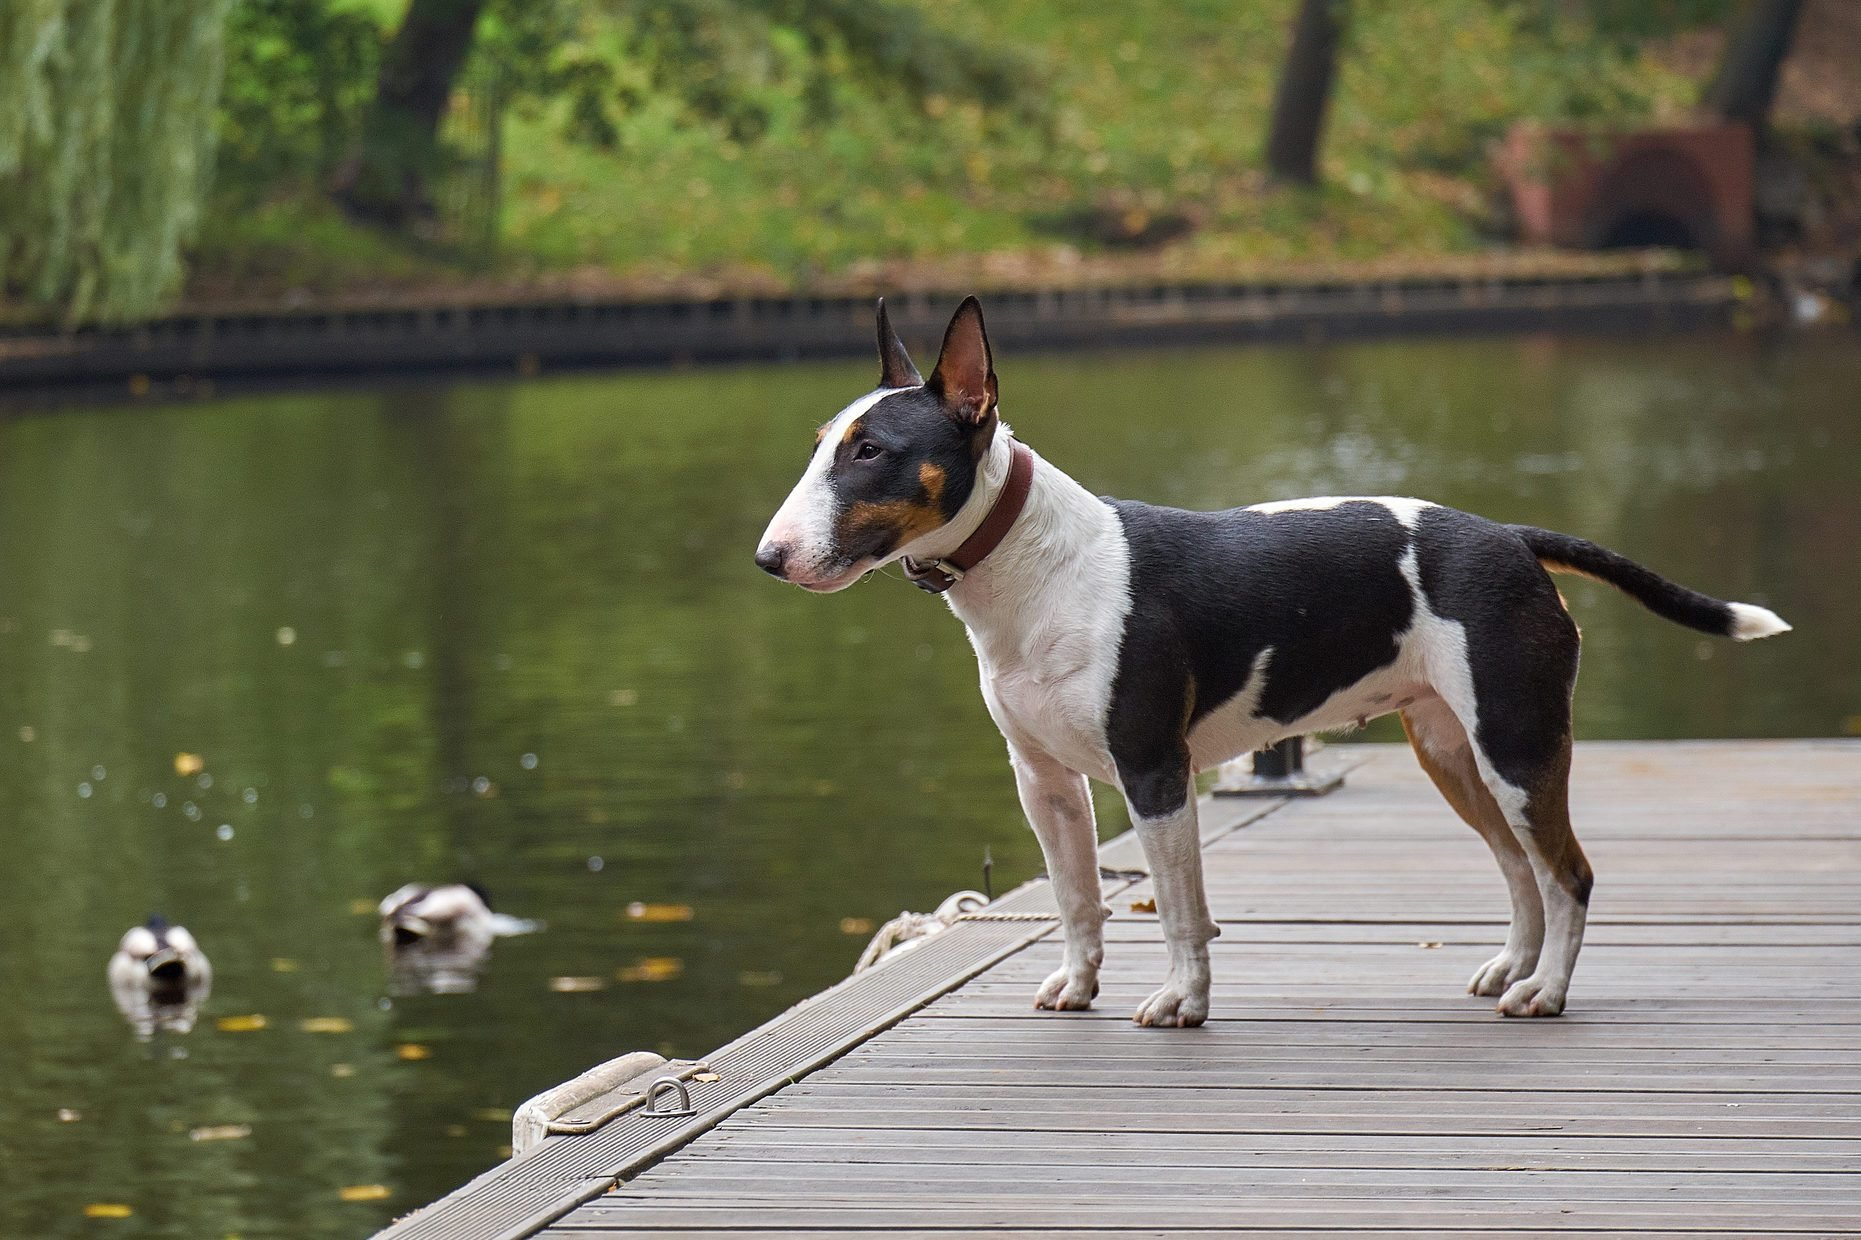 Bull terrier puppy dog on a wooden pier at a lake, copy space, detail with selected focus and narrow depth of field